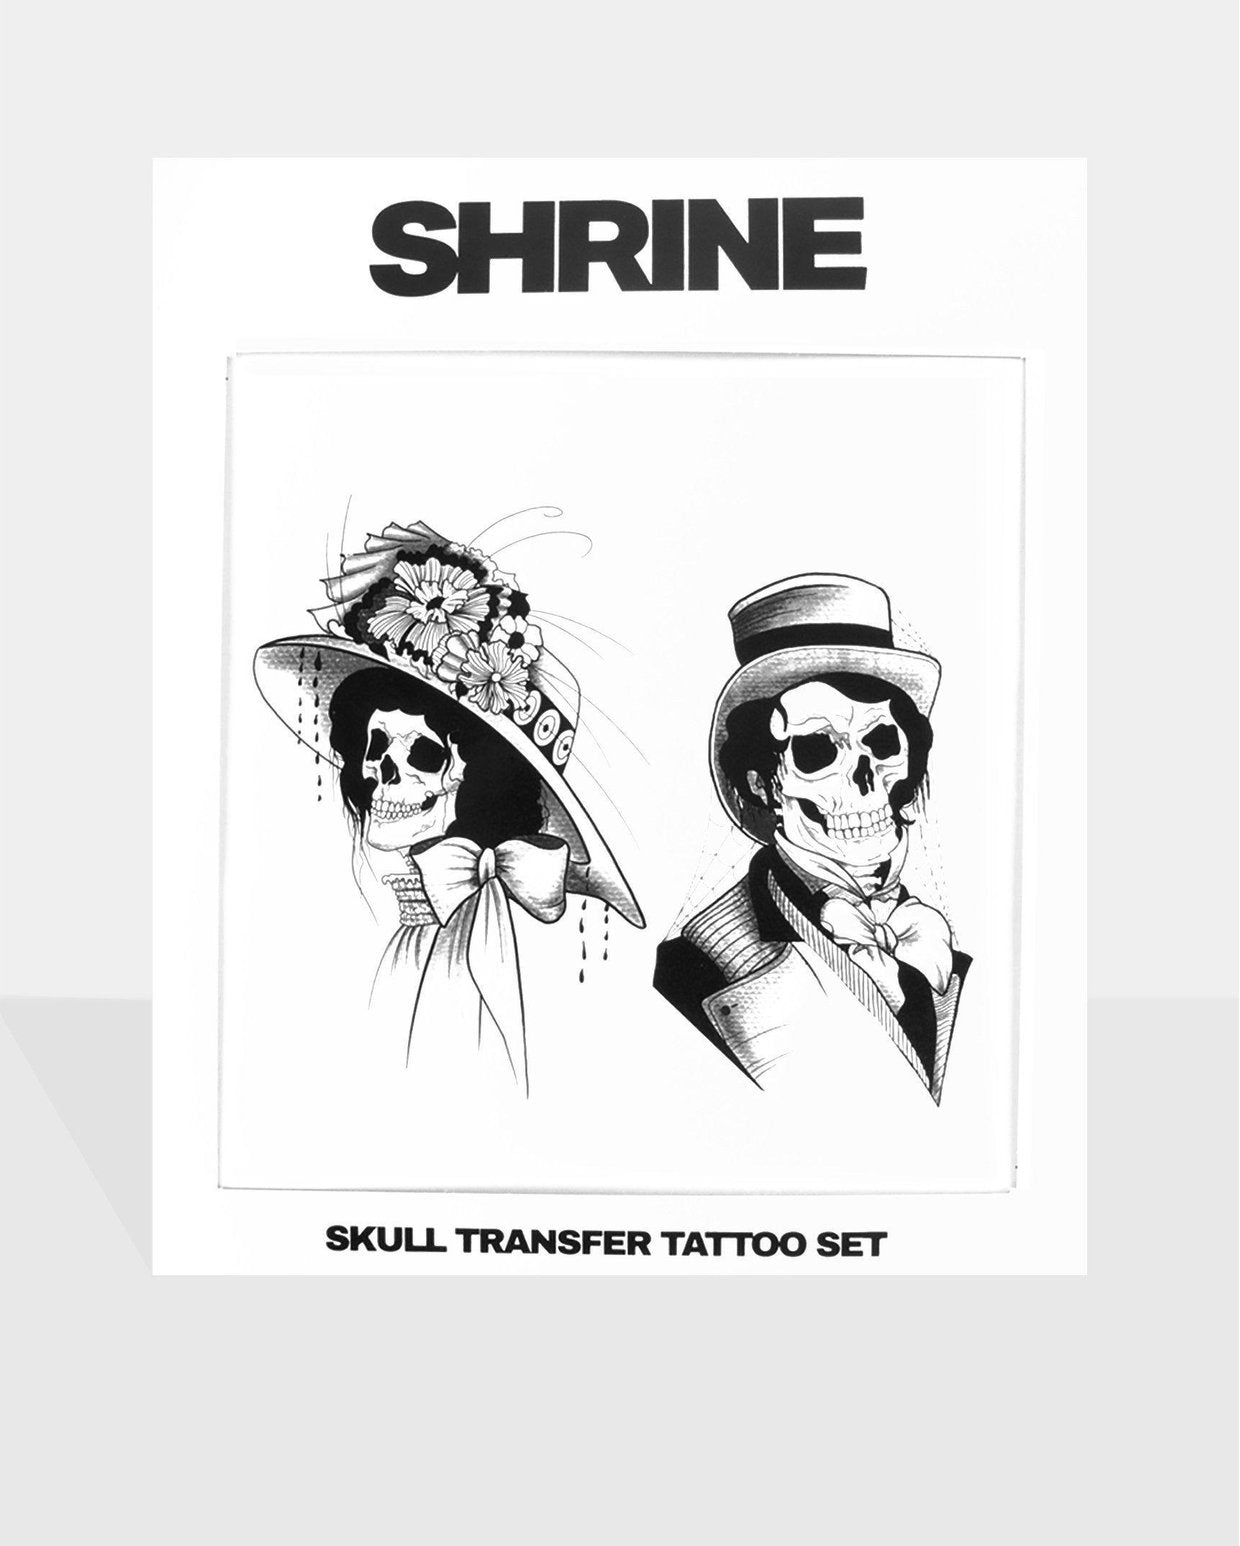 Skull Transfer Tattoo Pack